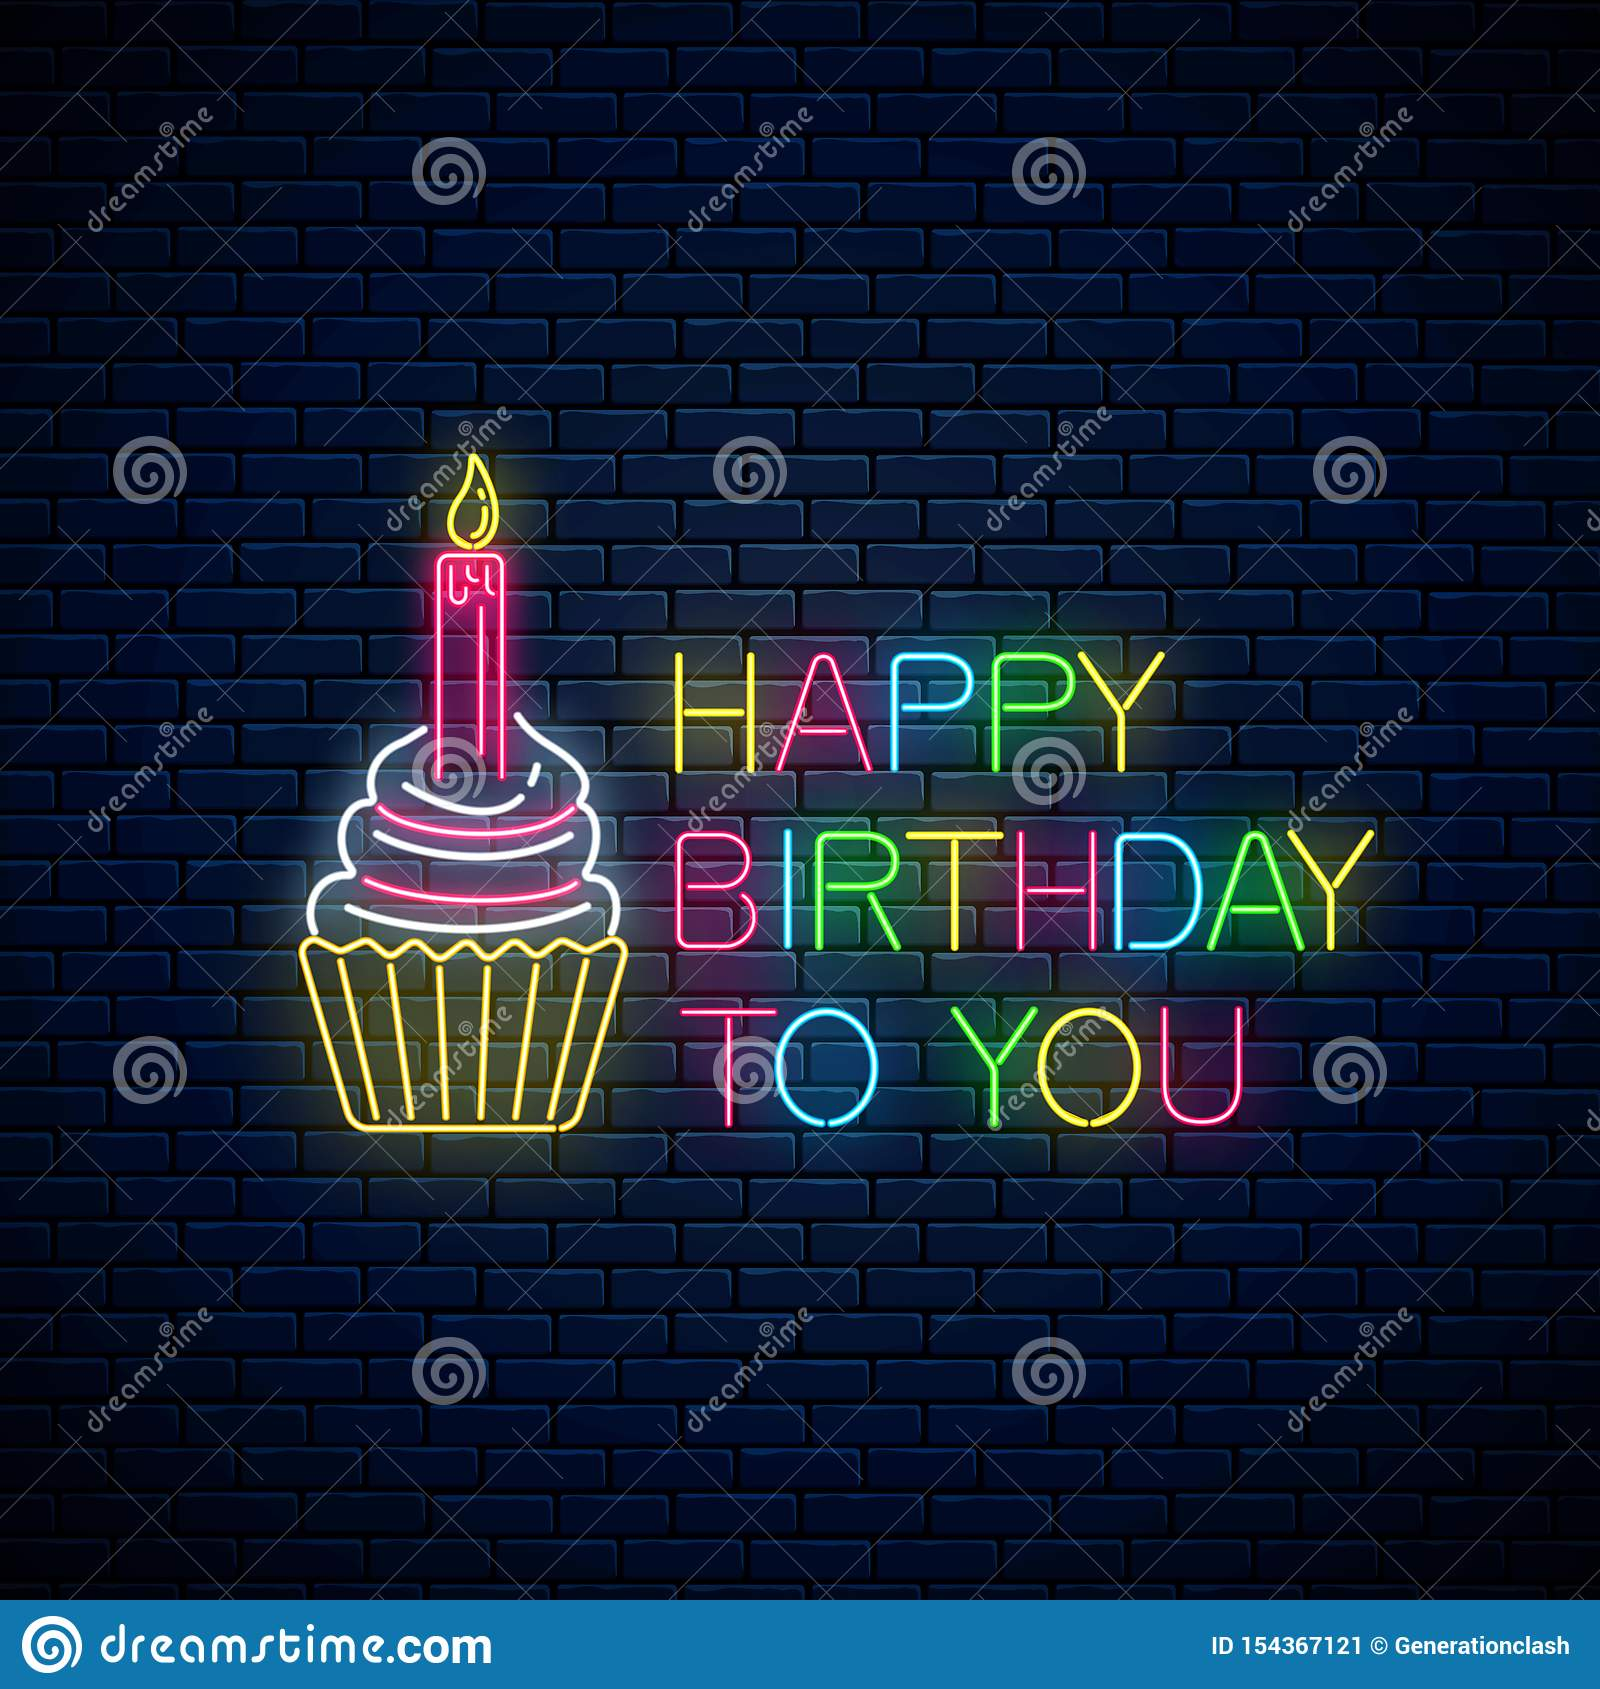 Terrific Glowing Neon Sign Of Happy Birthday Card With Cake And Candle Birthday Cards Printable Giouspongecafe Filternl